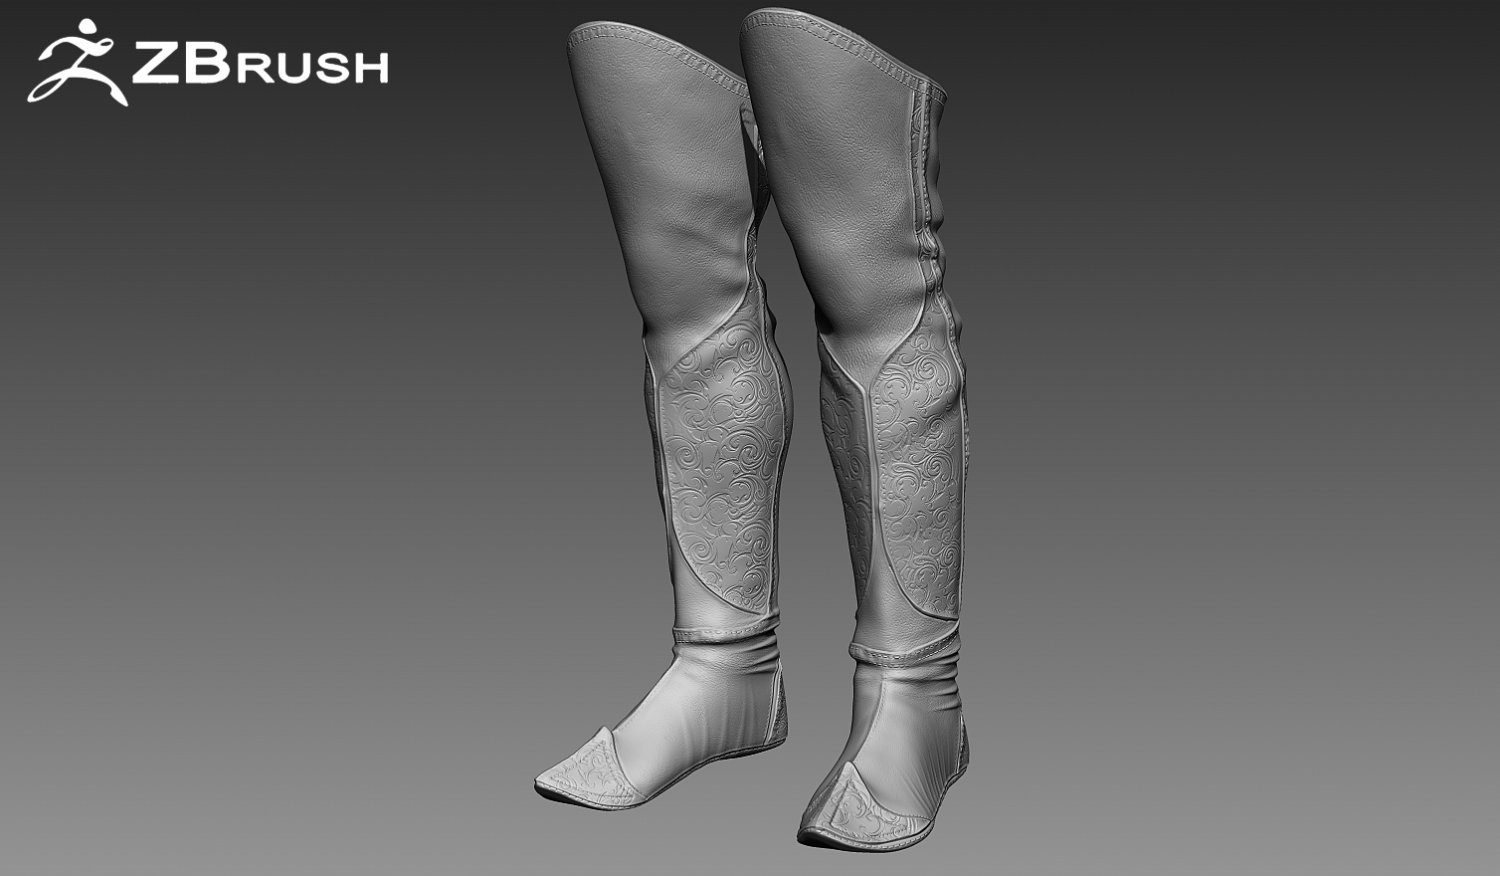 Zbrush Boots 3D Model in Clothing 3DExport